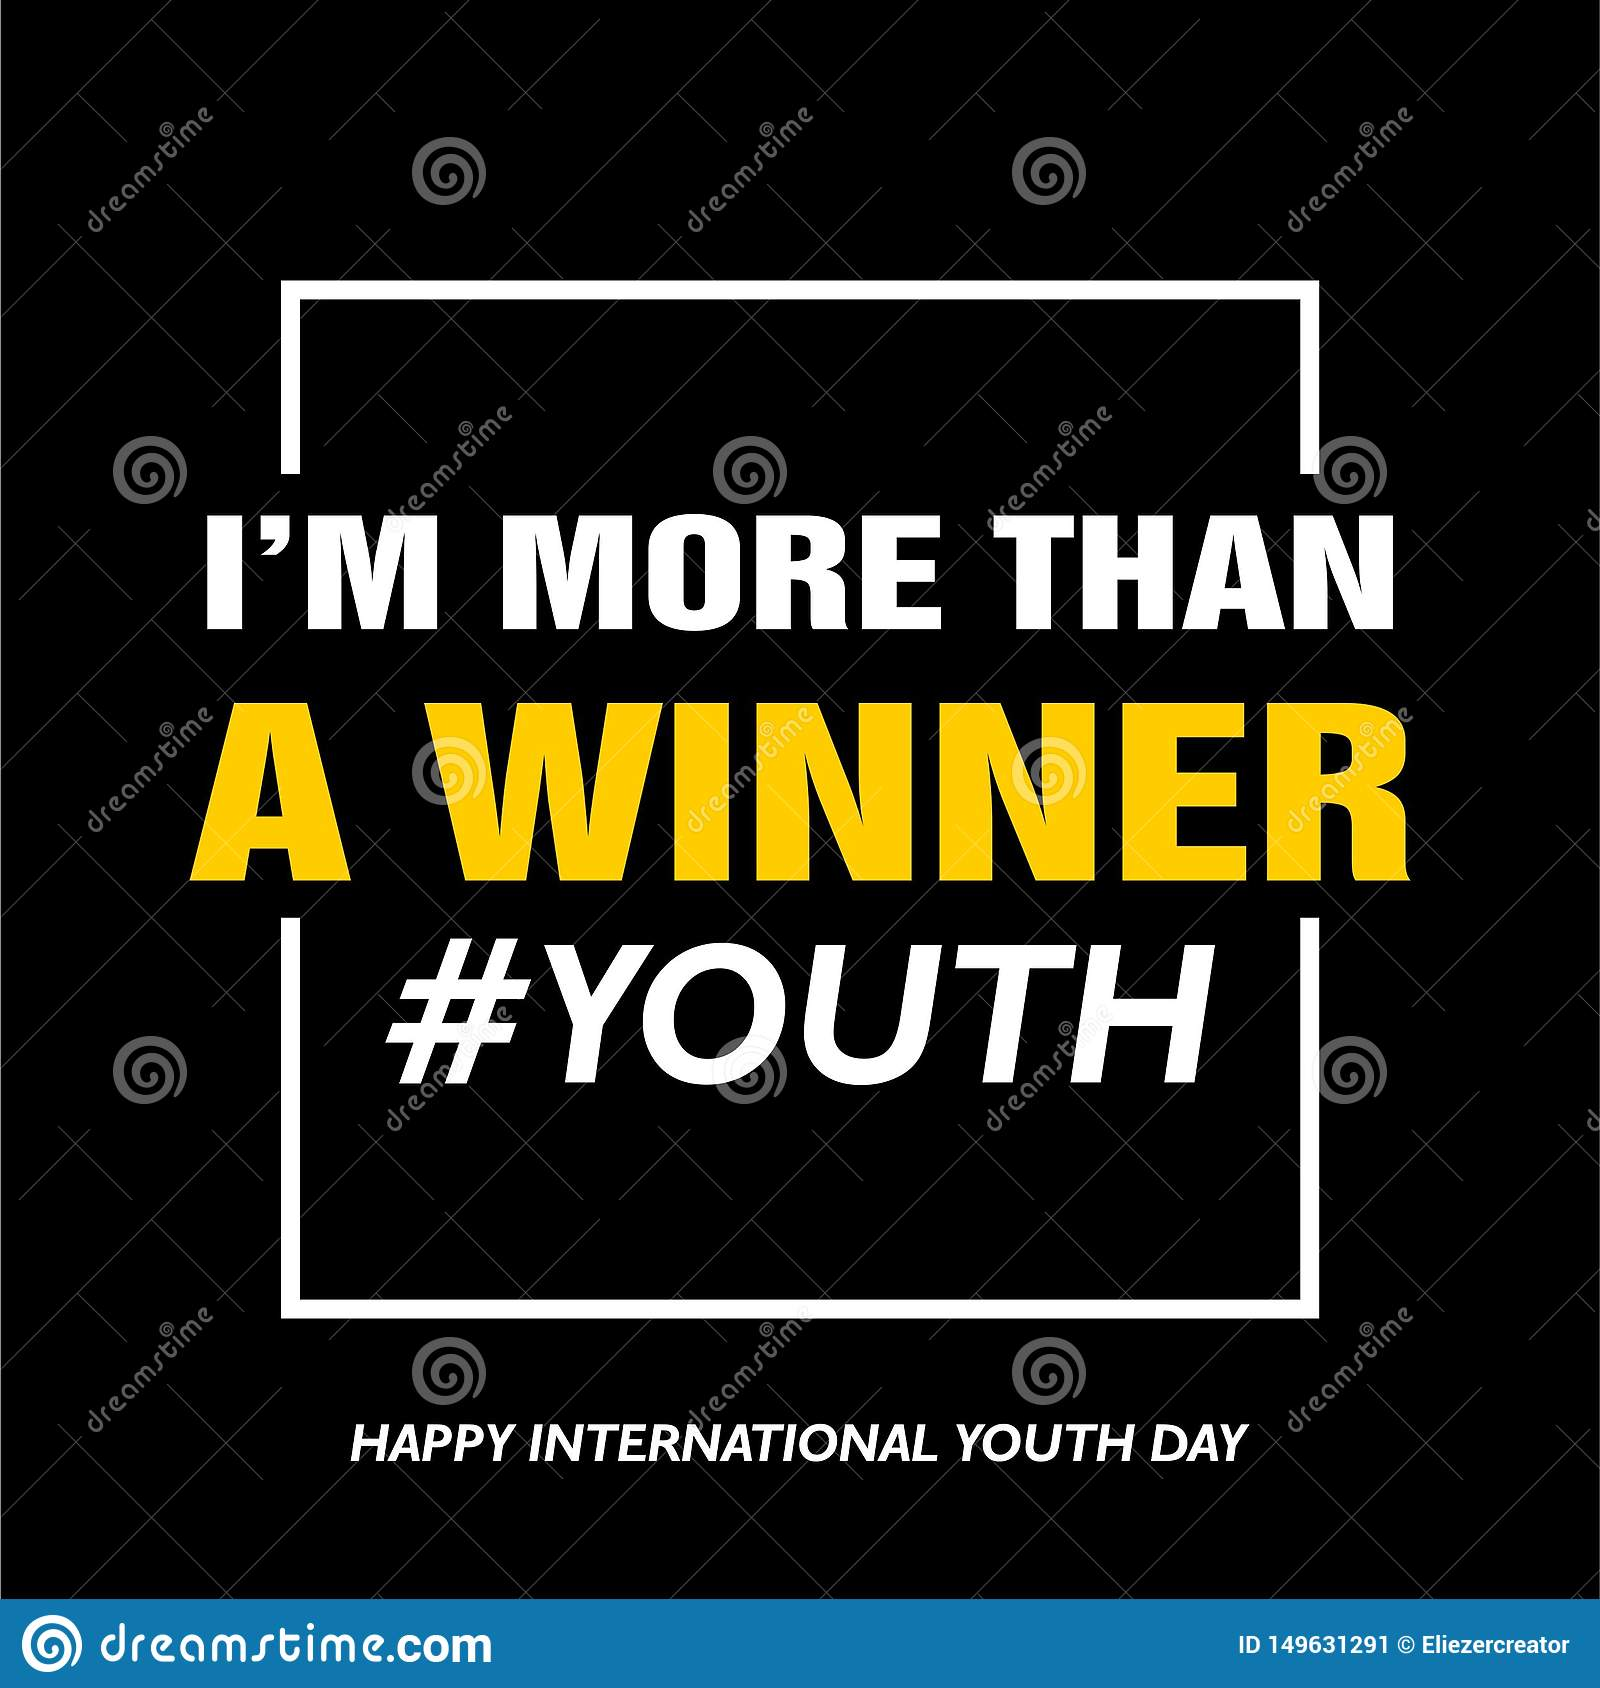 International youth day, 12 August,  I am more than a winner